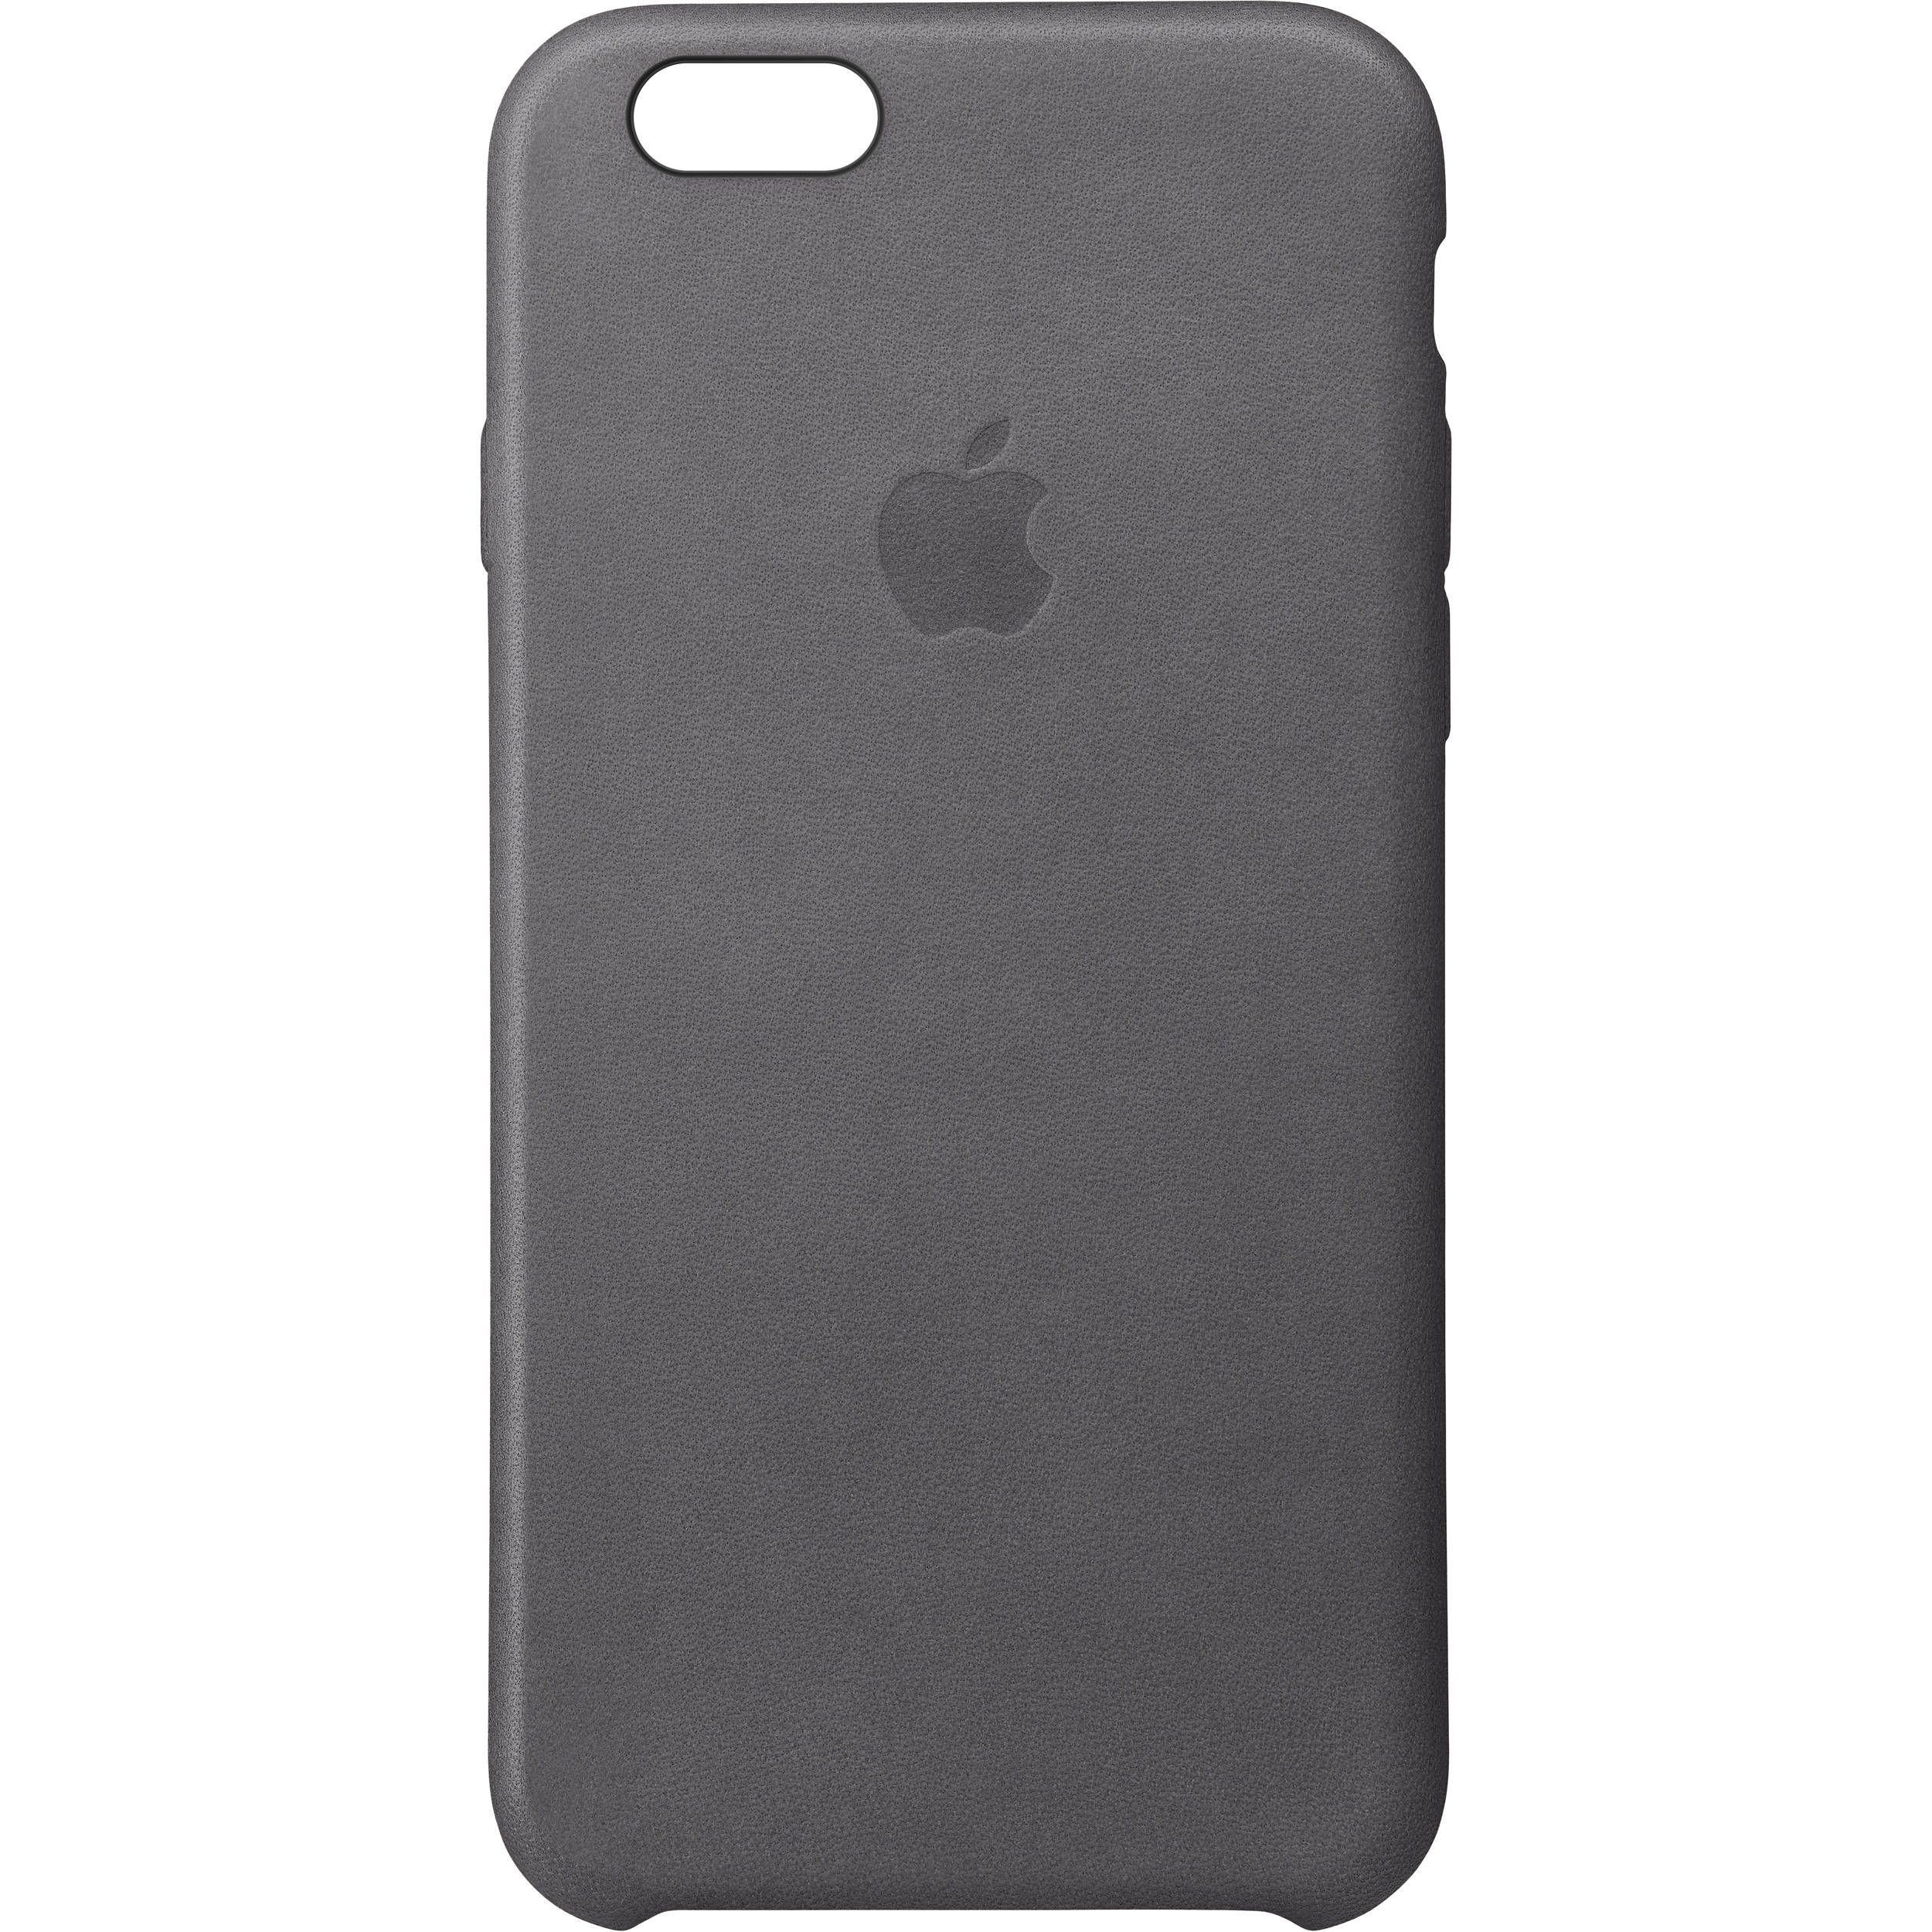 Storm Gray Iphone Case